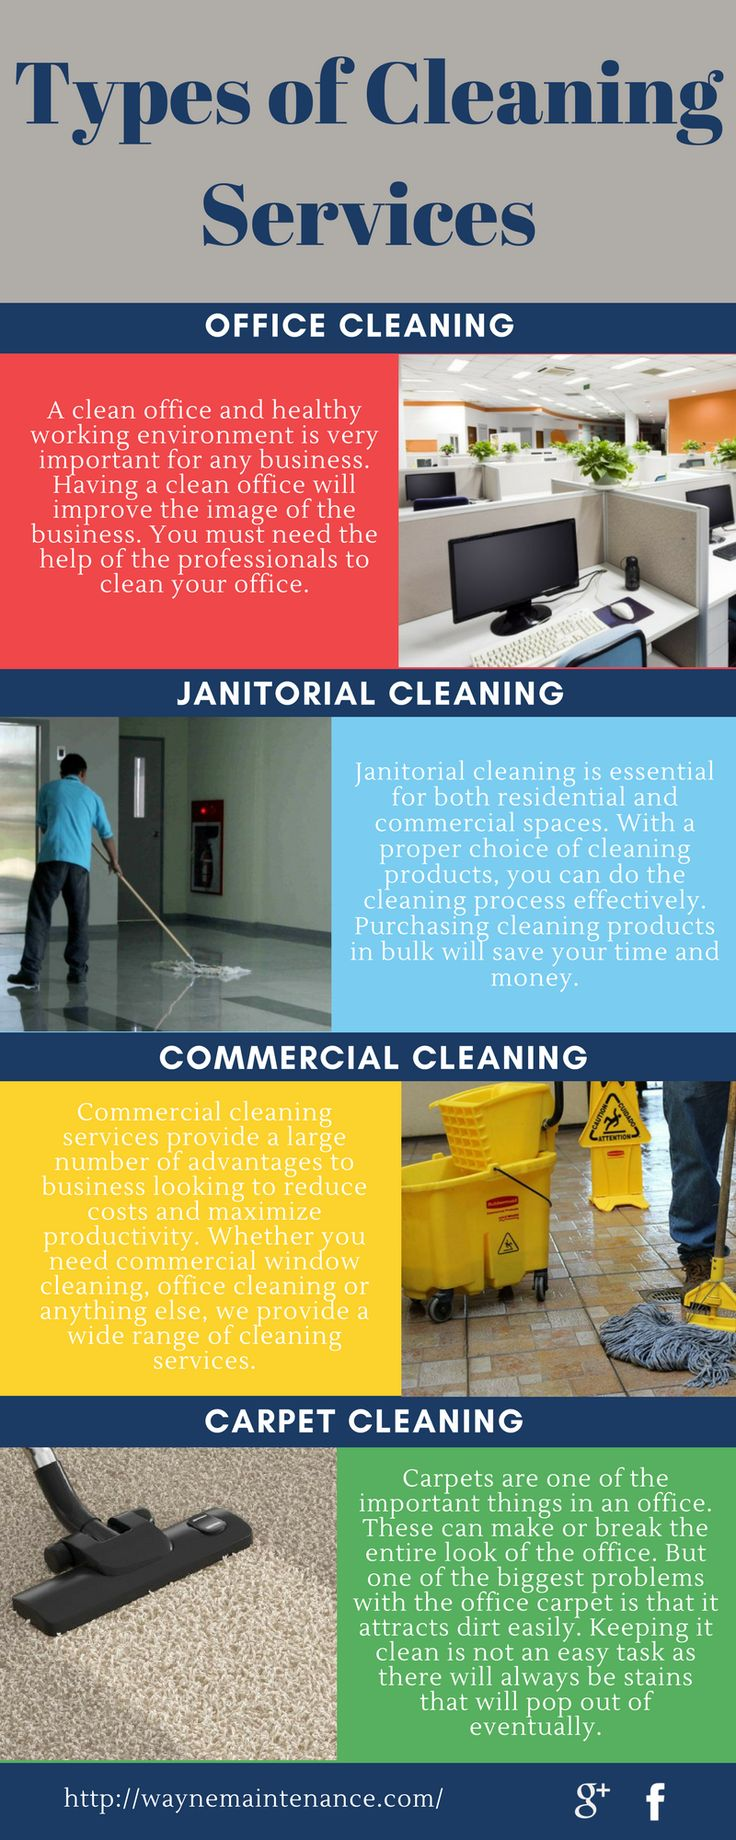 Wayne Professional Maintenance provides an extensive range of #cleaning #services in New Jersey. Our cleaning contractors are well experienced in providing quick cleaning in any emergency case. To know about different types of cleaning services, visit this infographics.